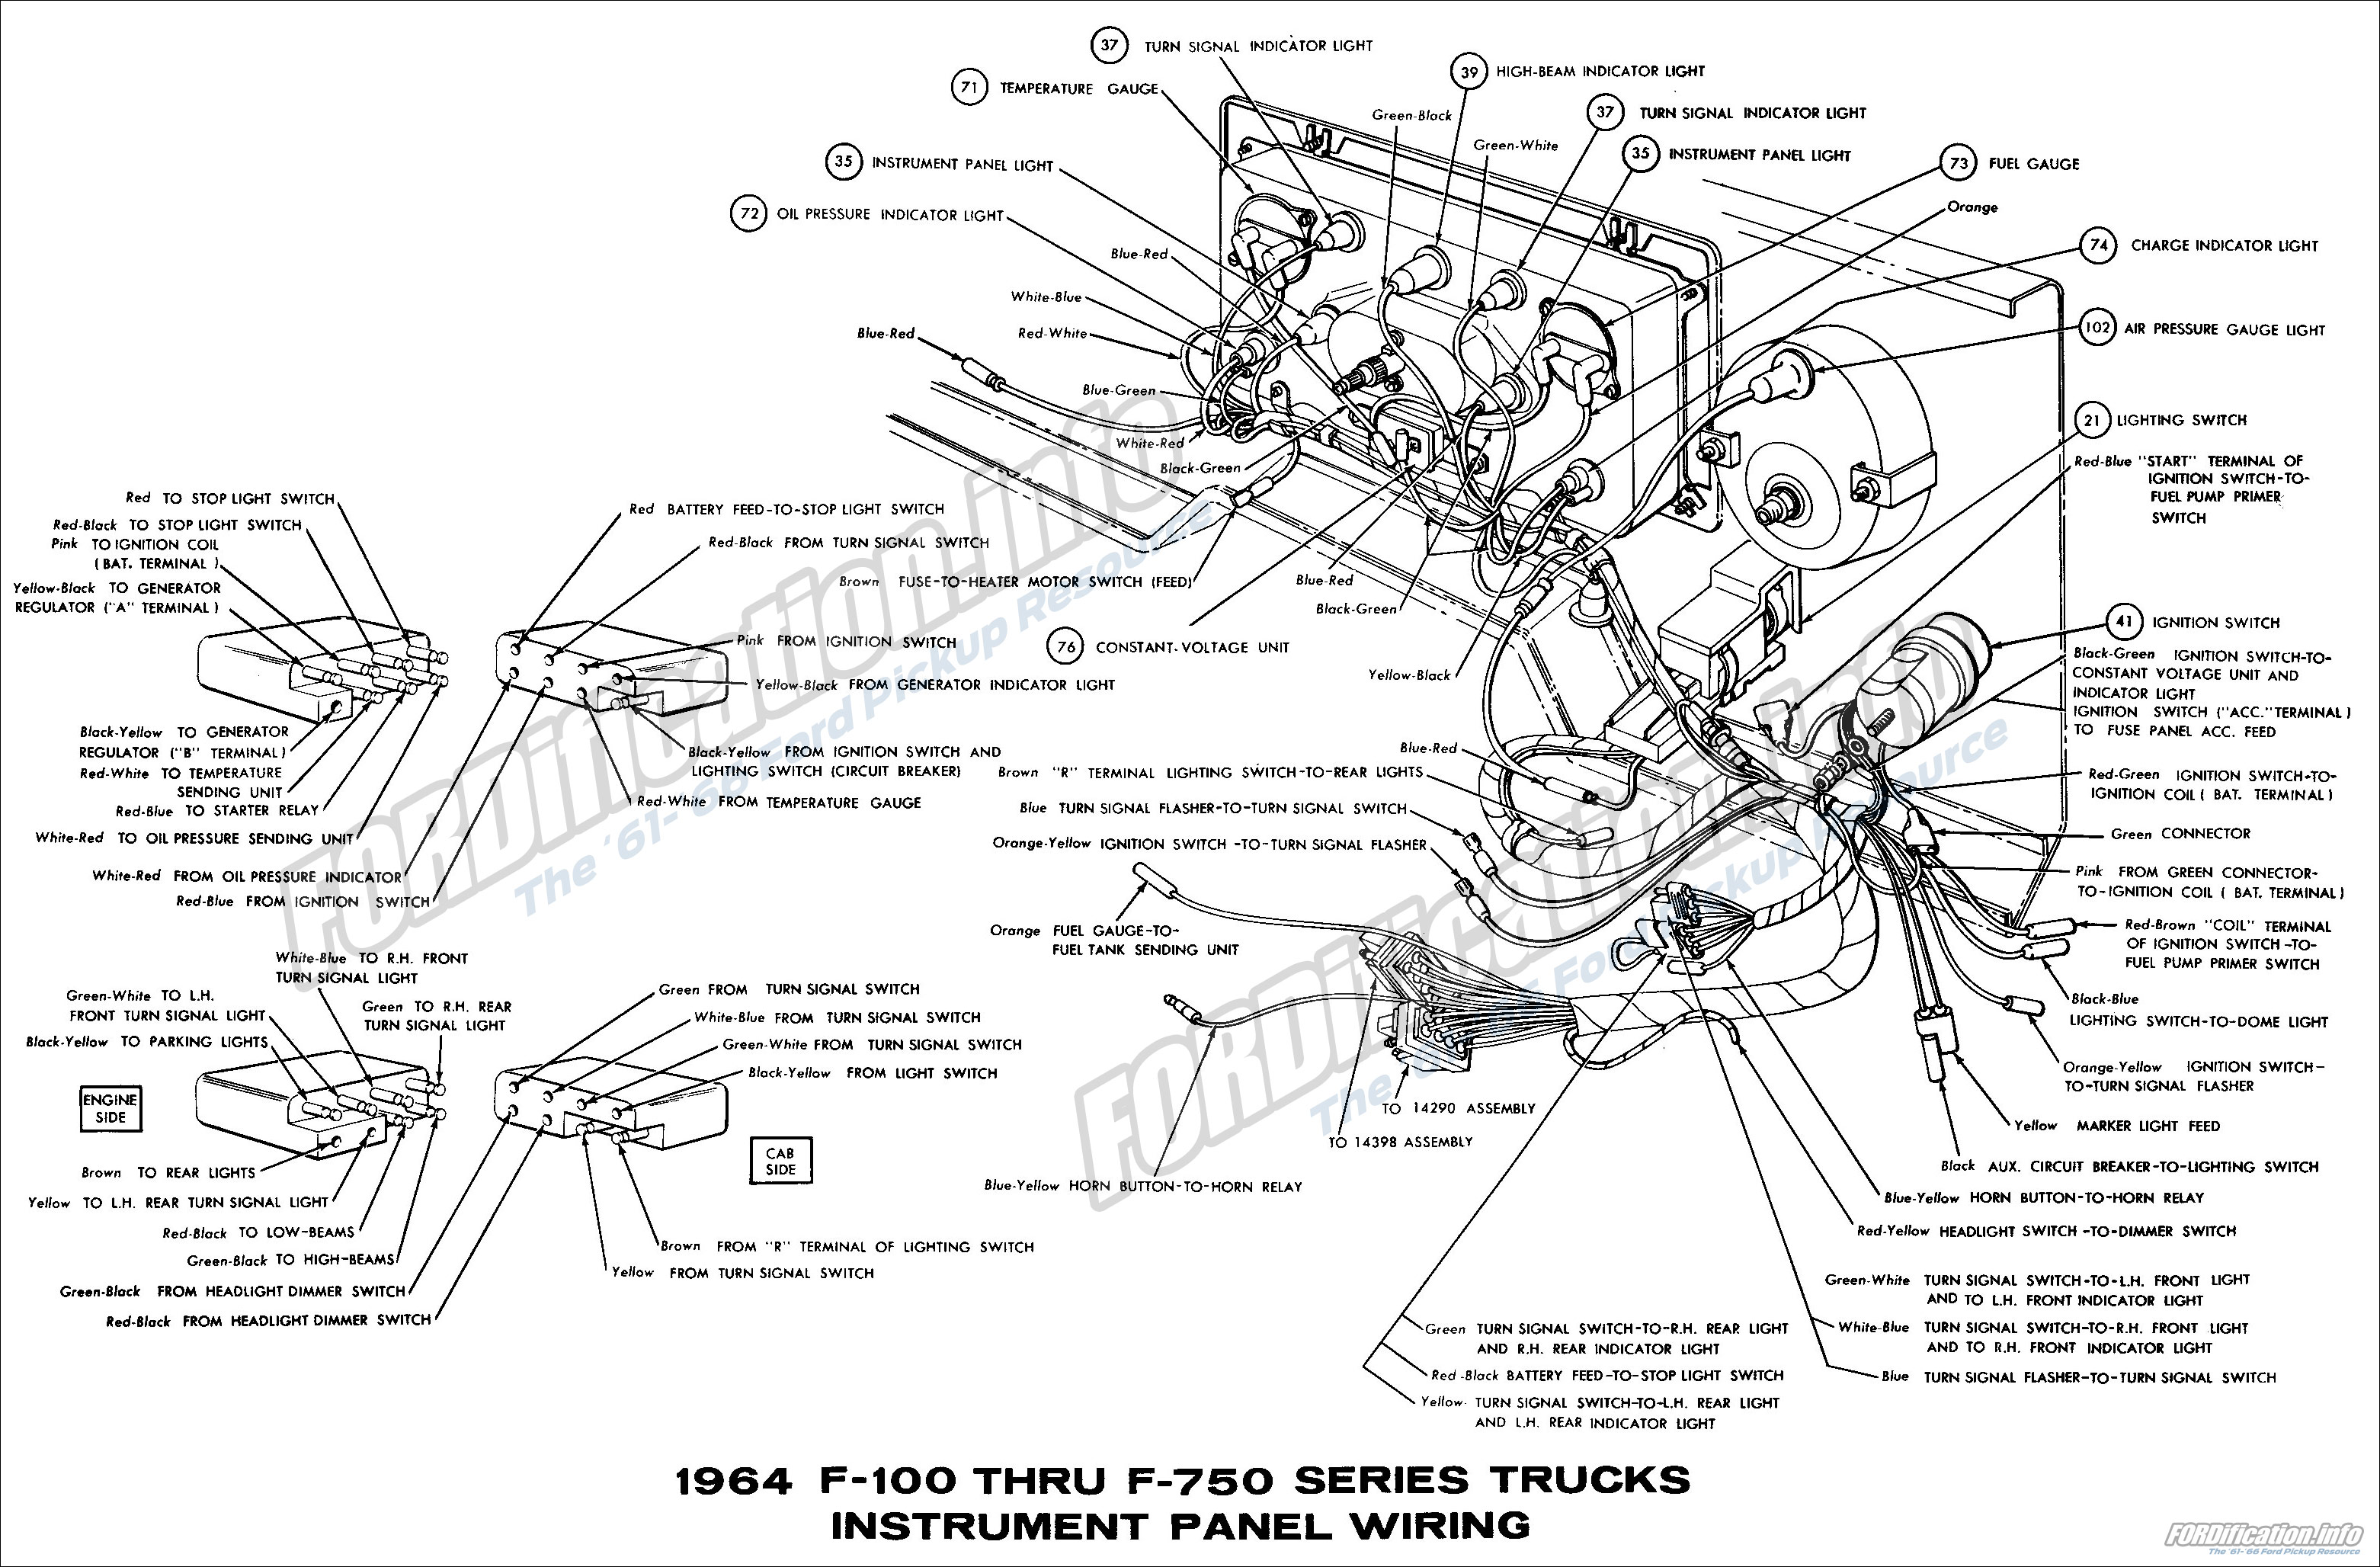 1964_02 1964 ford truck wiring diagrams fordification info the '61 '66 ford truck wiring schematics at bayanpartner.co